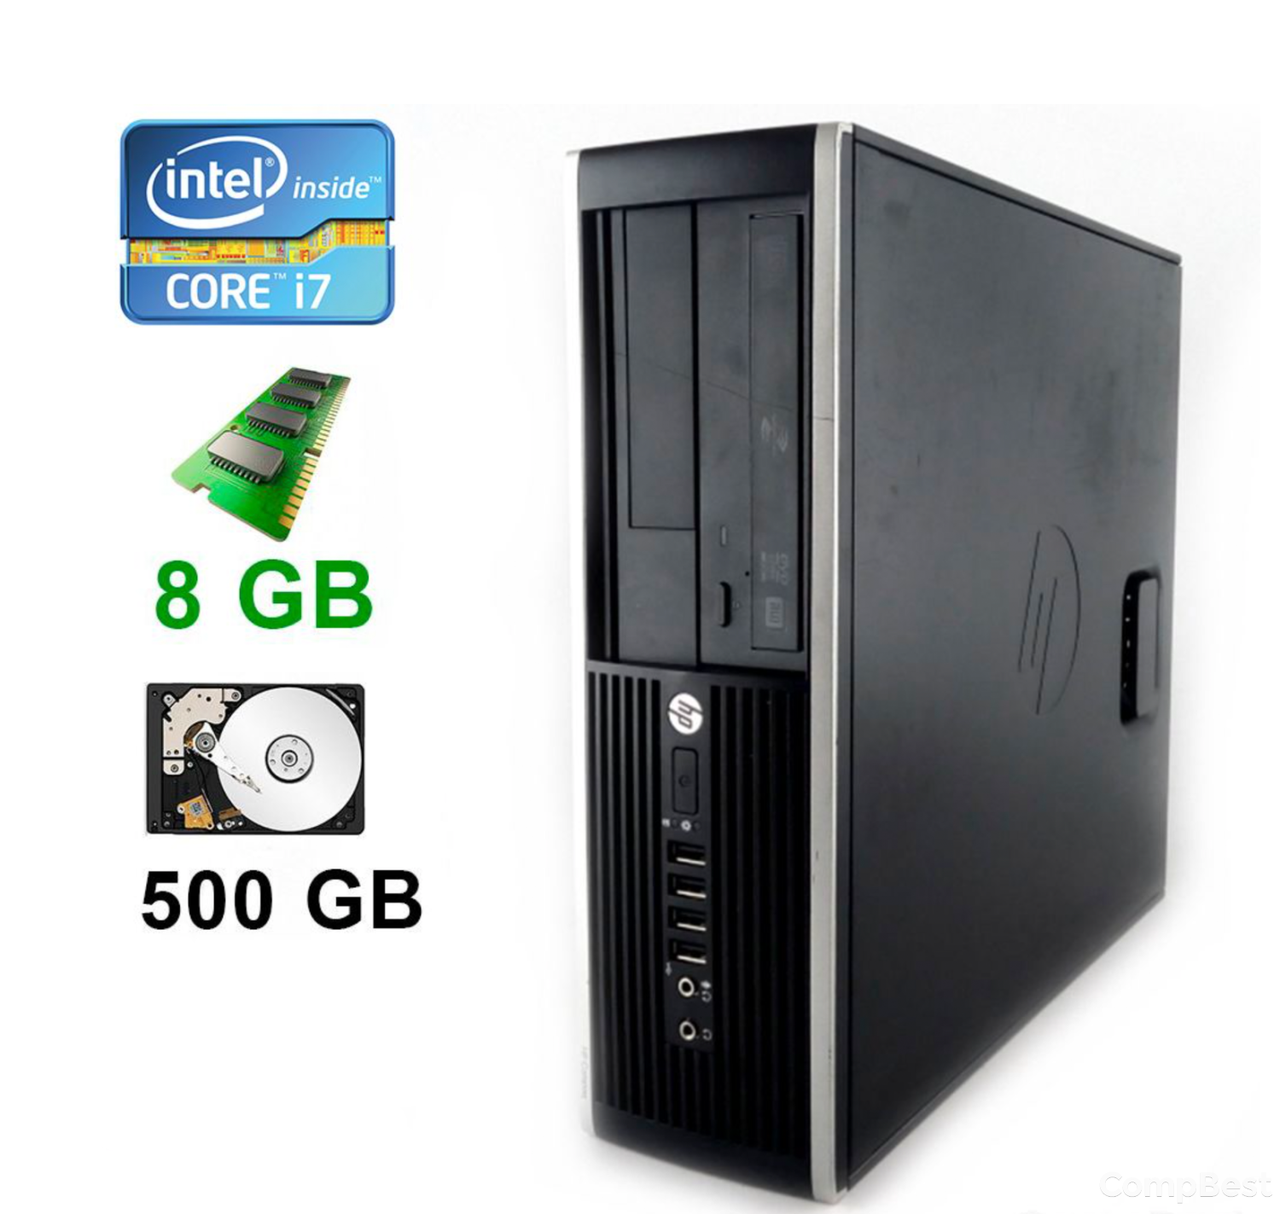 HP Compaq Elite 8200 SFF / Intel® Core™ i7-2600 (4(8)ядра по 3.40 - 3.80GHz) / 8GB DDR3 / 500GB HDD